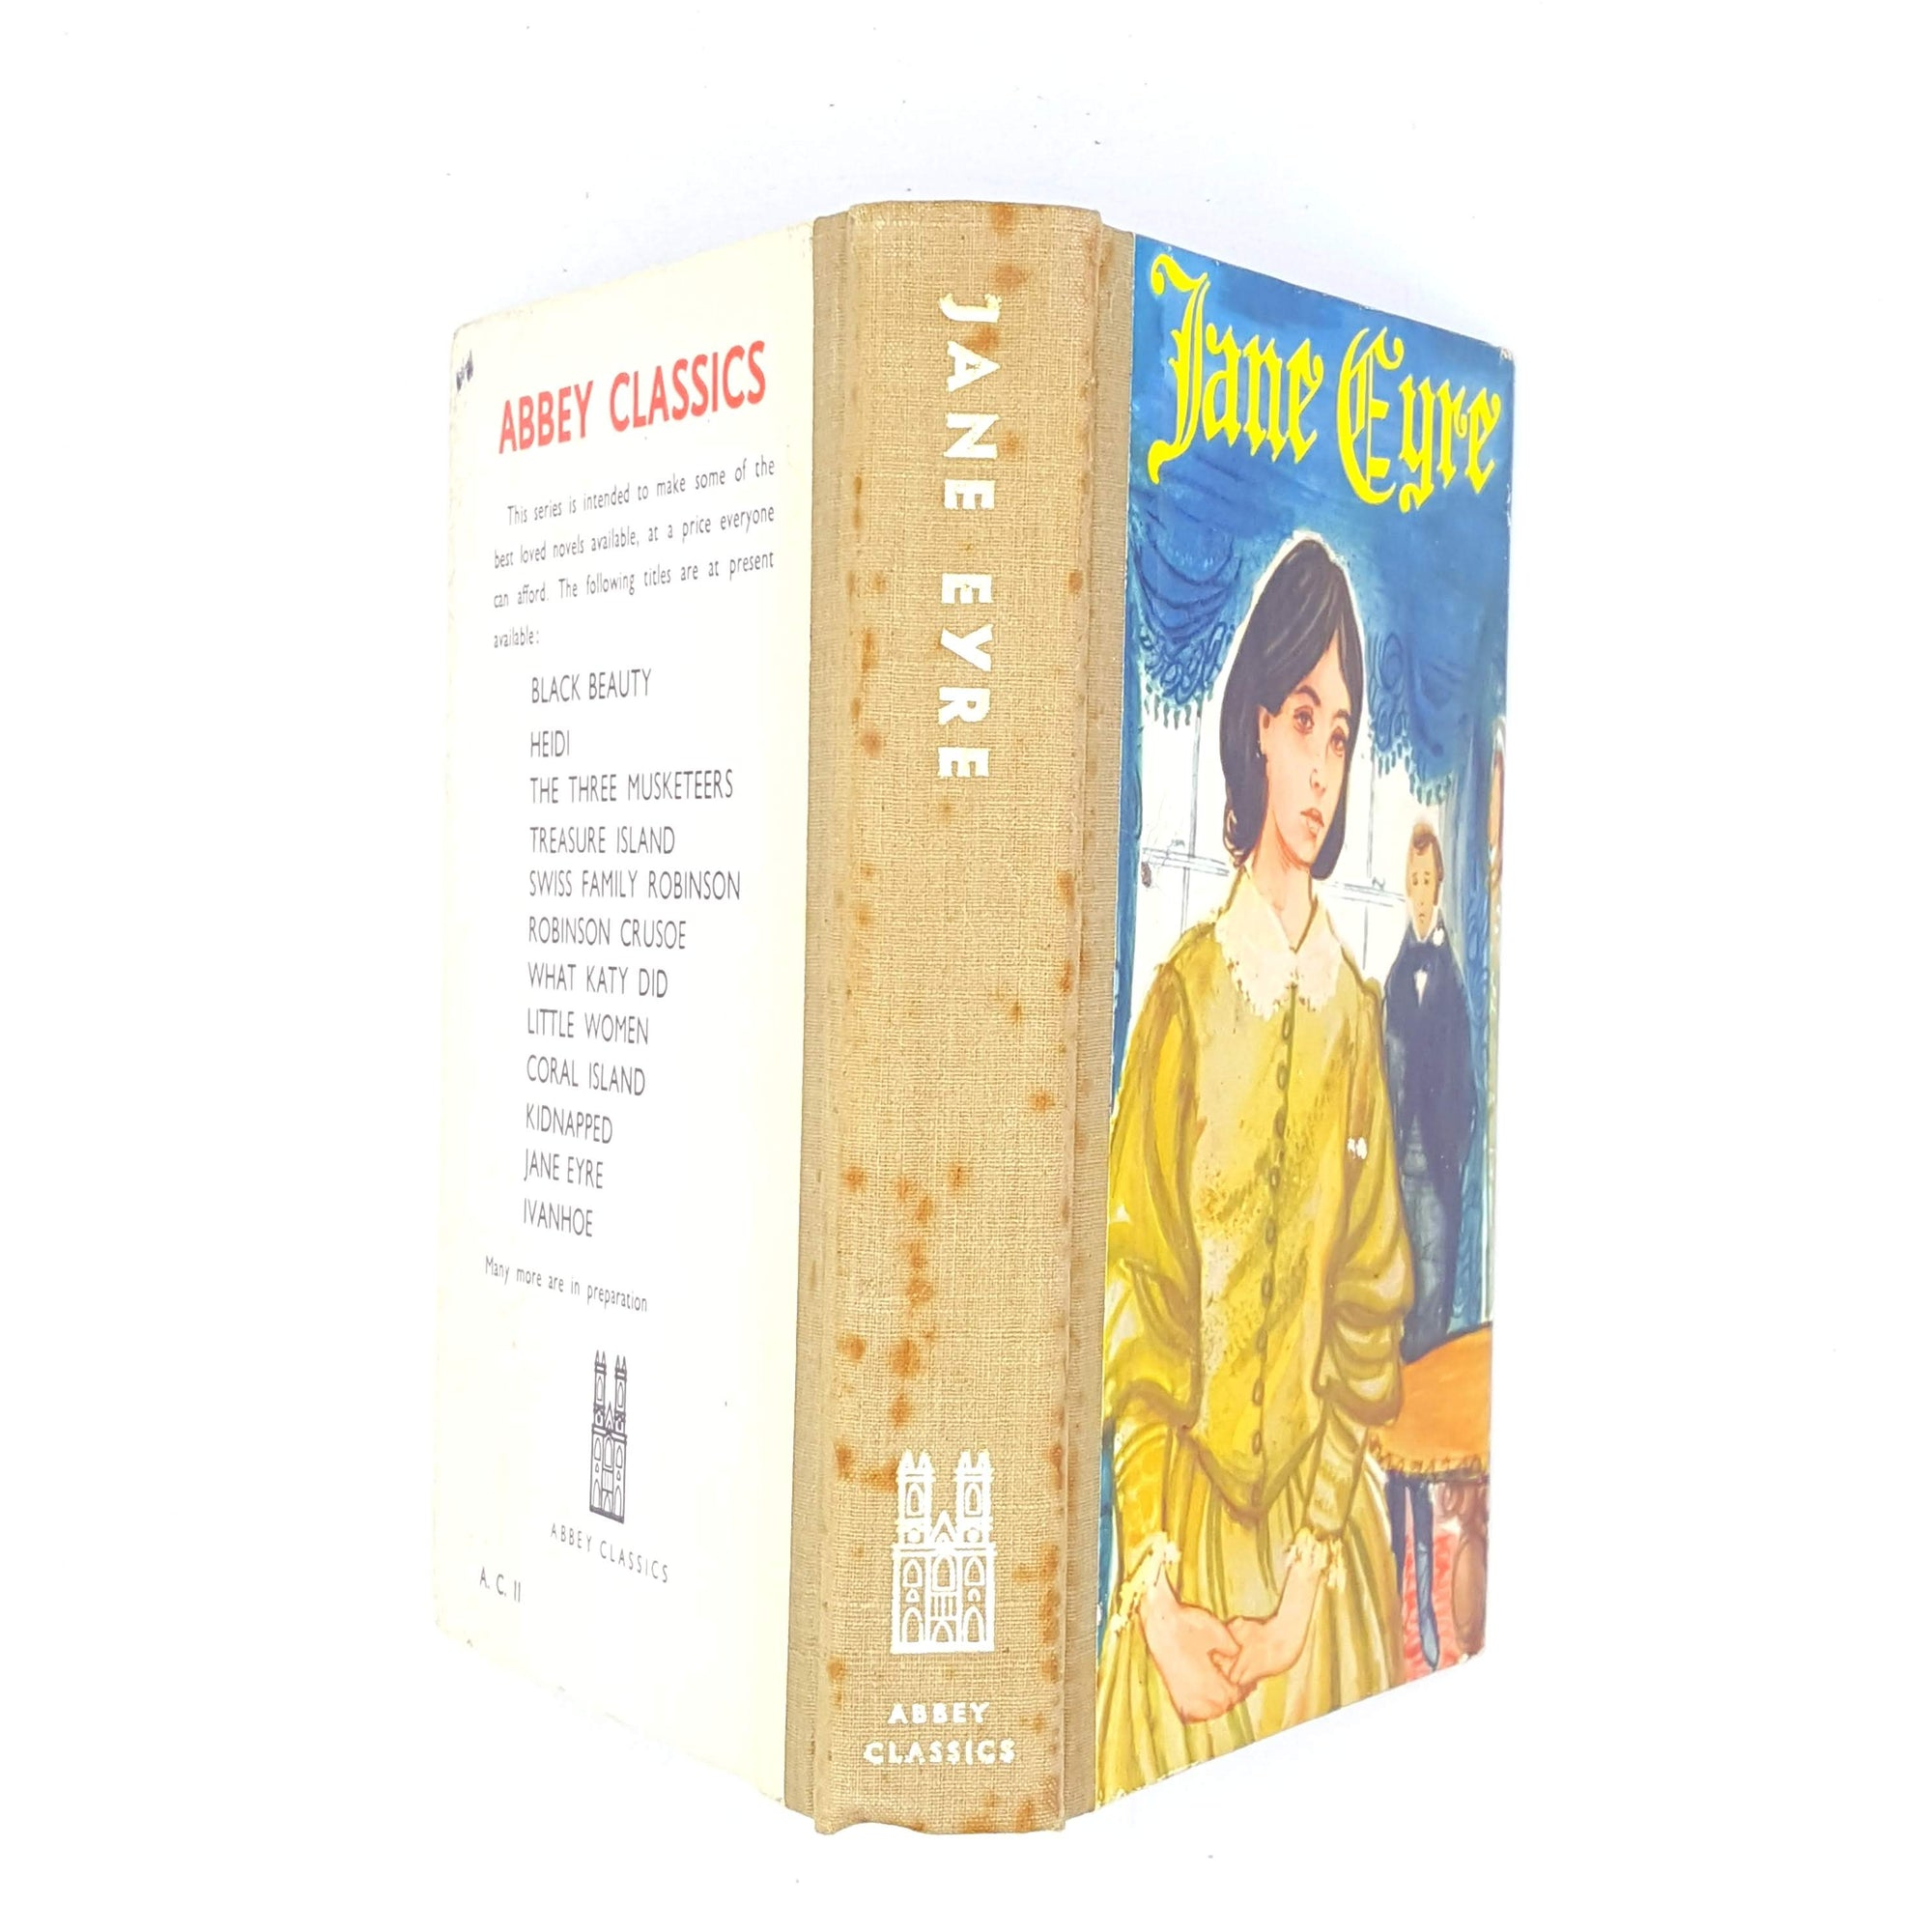 jane-eyre-book-thrift-old-charlotte-bronte-decorative-blue-books-abbey-classics-country-house-library-vintage-yellow-classics-